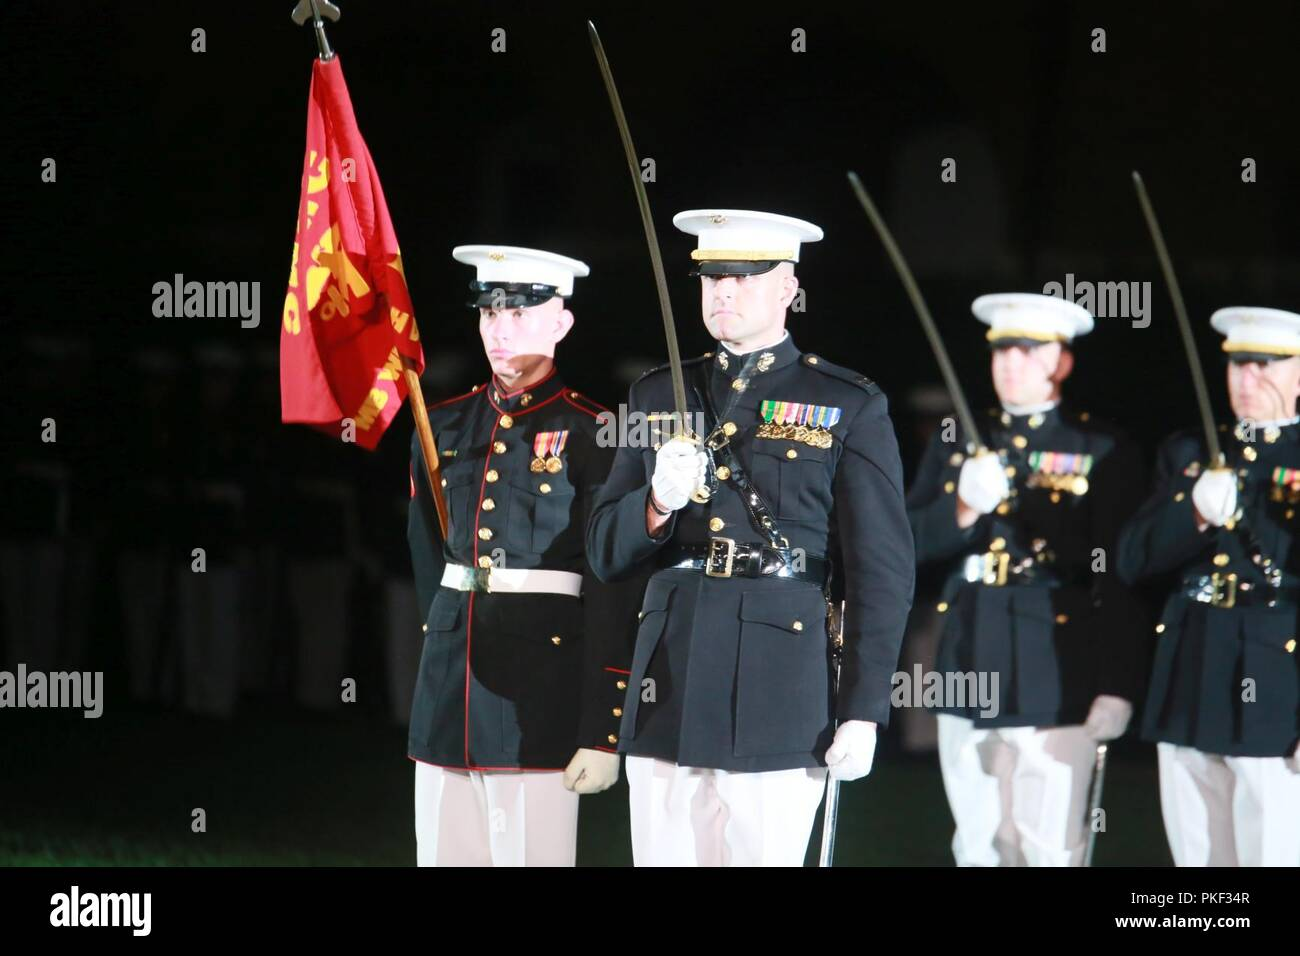 Captain Billy Grissom, company commander, Bravo Company, Marine Barracks Washington D.C., executes sword manual during a Friday Evening Parade at the Barracks, Aug. 03, 2018. The guests of honor for the parade were Ms. Ryan Manion, president, Travis Mannion Foundation, and U.S. Marine Corps Col. Tom Manion, retired, chairman emeritus, Travis Manion Foundation. The hosting official was Lt. Gen. Michael G. Dana, director, Marine Corps Staff. - Stock Image